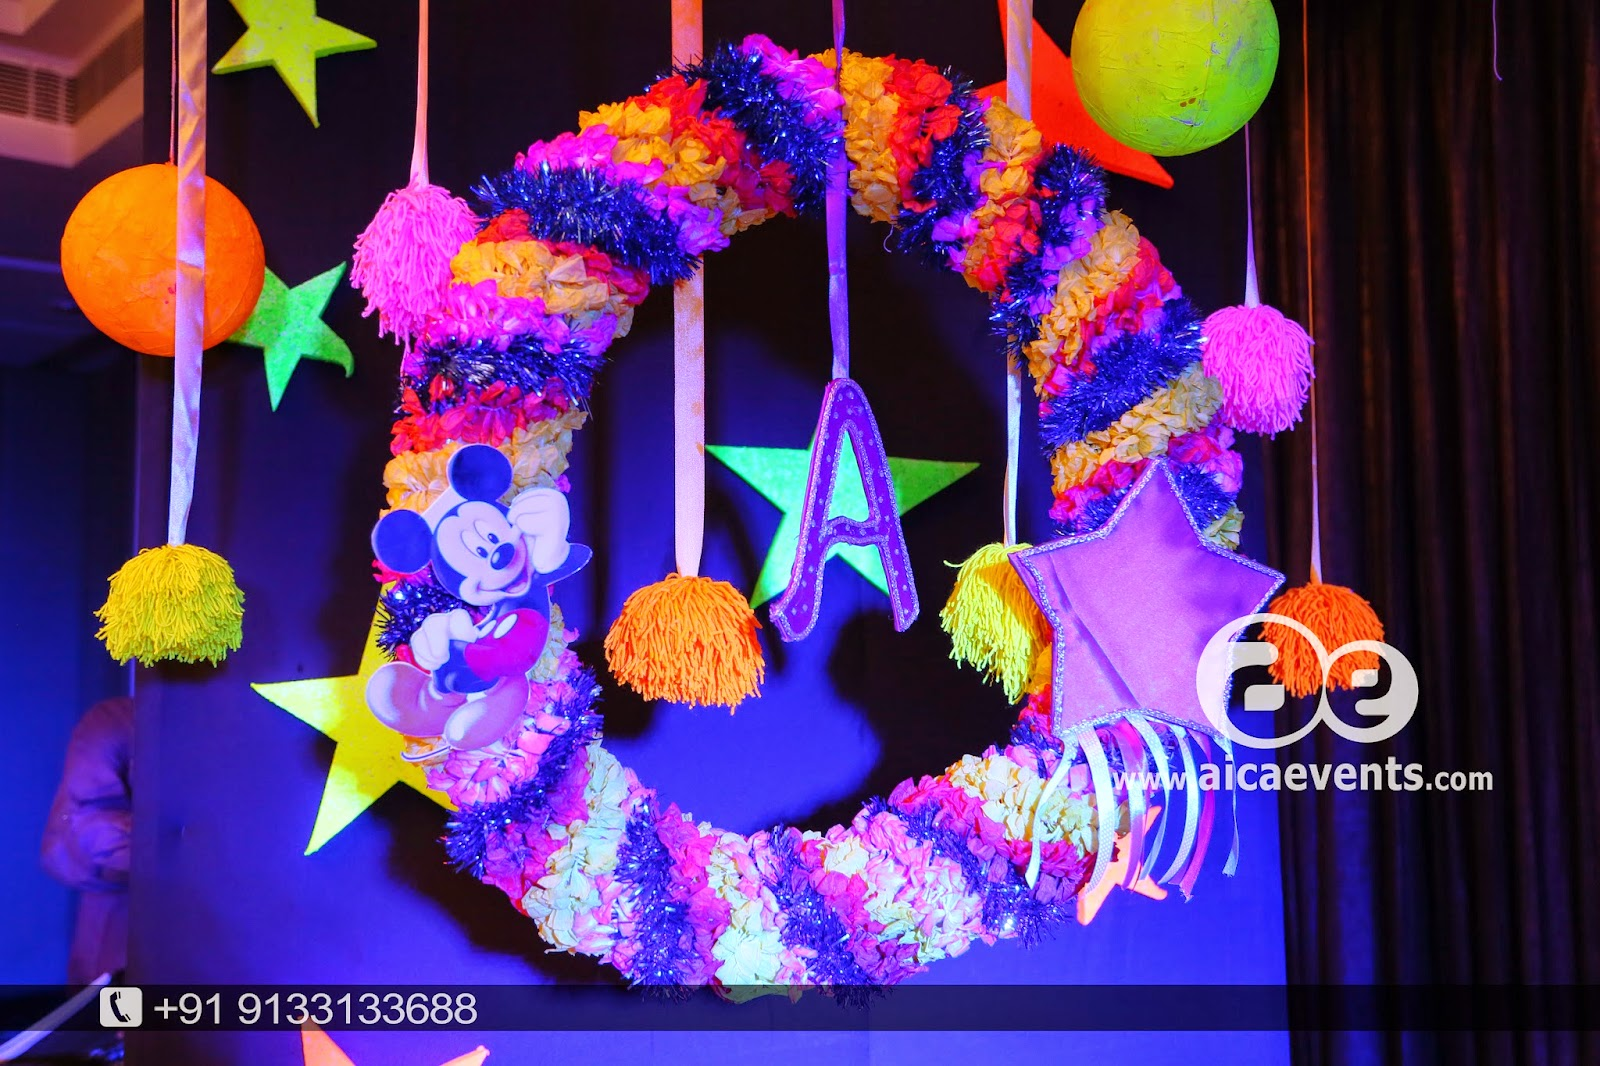 Aicaevents india balloon wall stage backdrop decoration for Balloon backdrop decoration